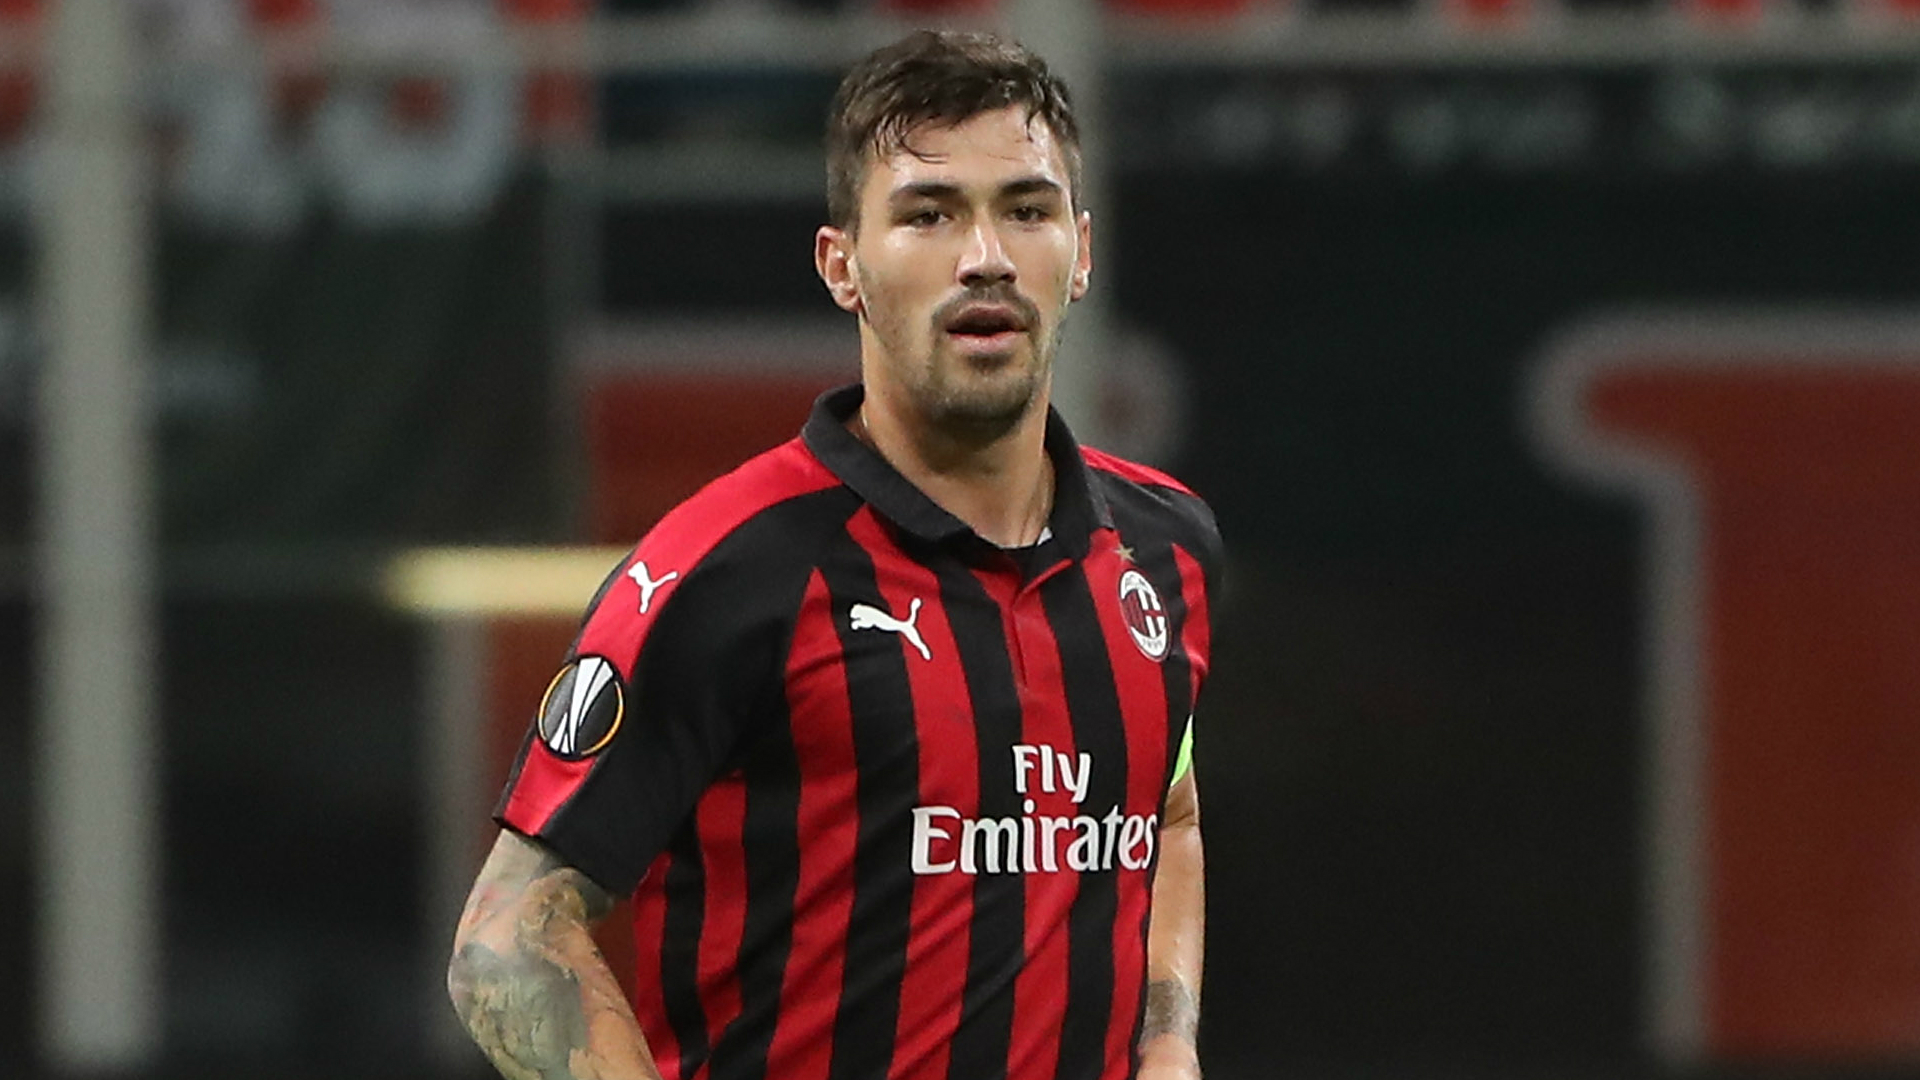 Alessio Romagnoli praised Gennaro Gattuso's relationship with AC Milan's players ahead of this weekend's derby against Inter.